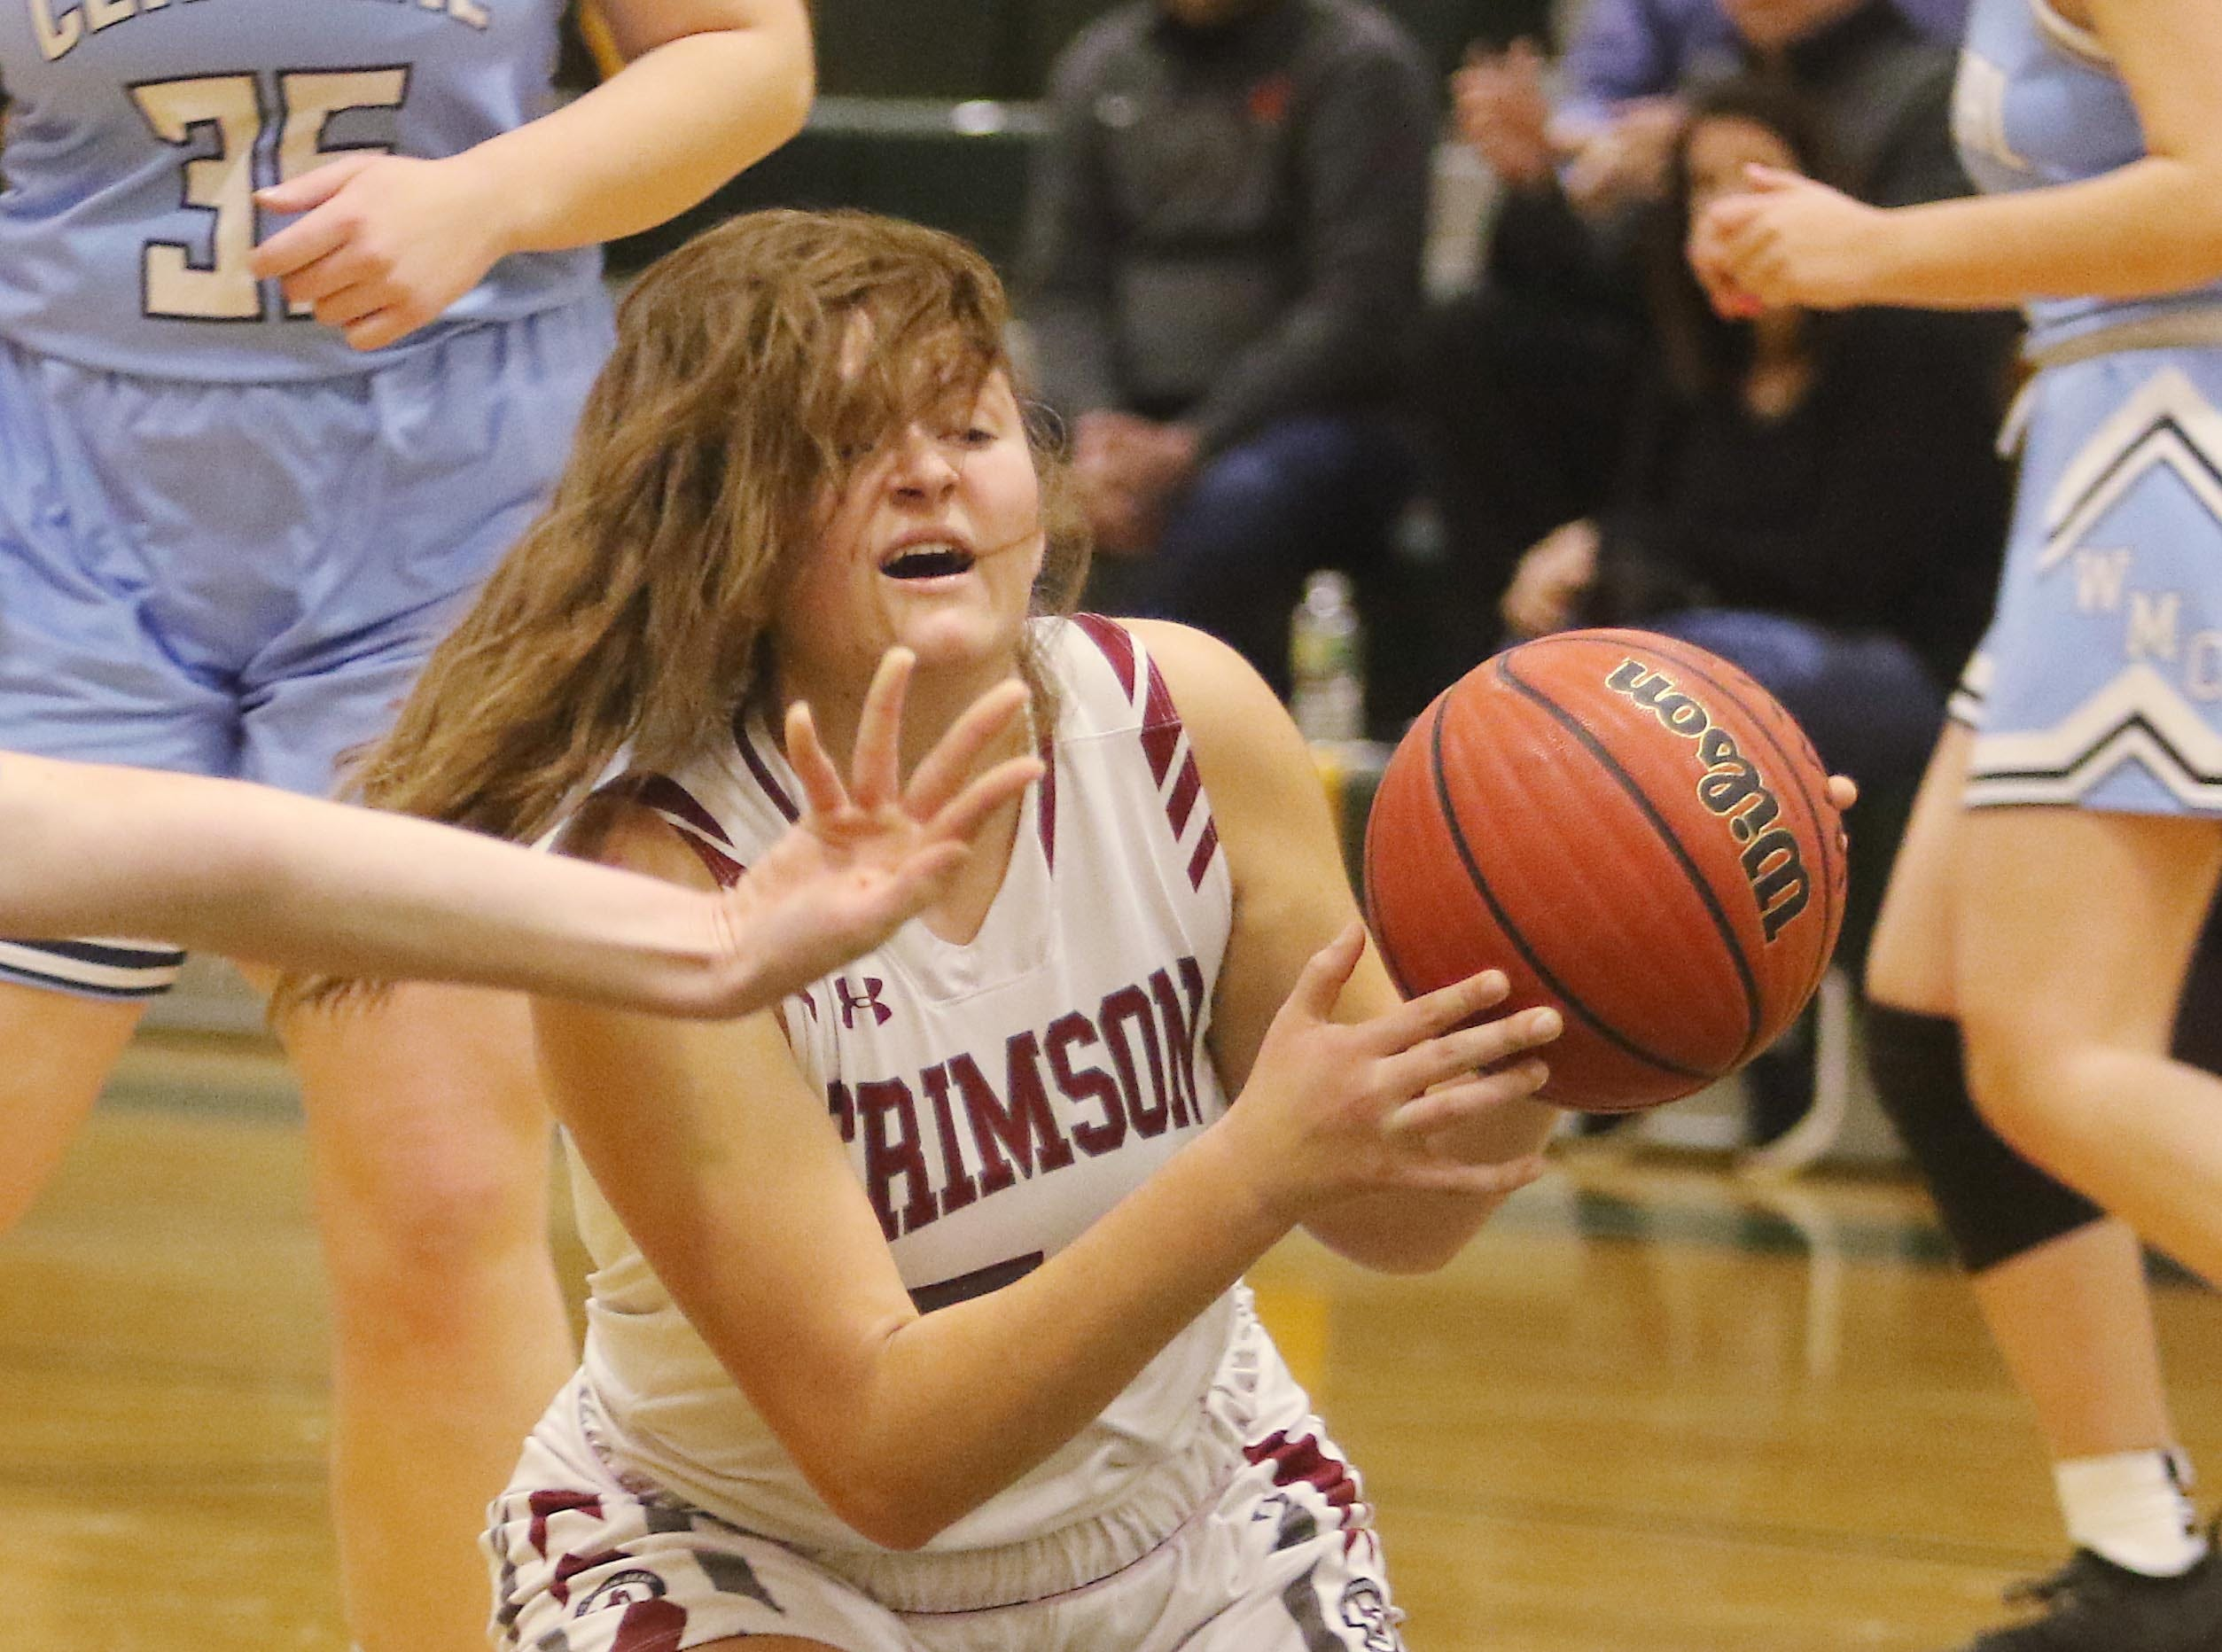 Emma Kenny of Morristown-Beard picks up the loose ball and looks for a team mate to pass to in the first half.